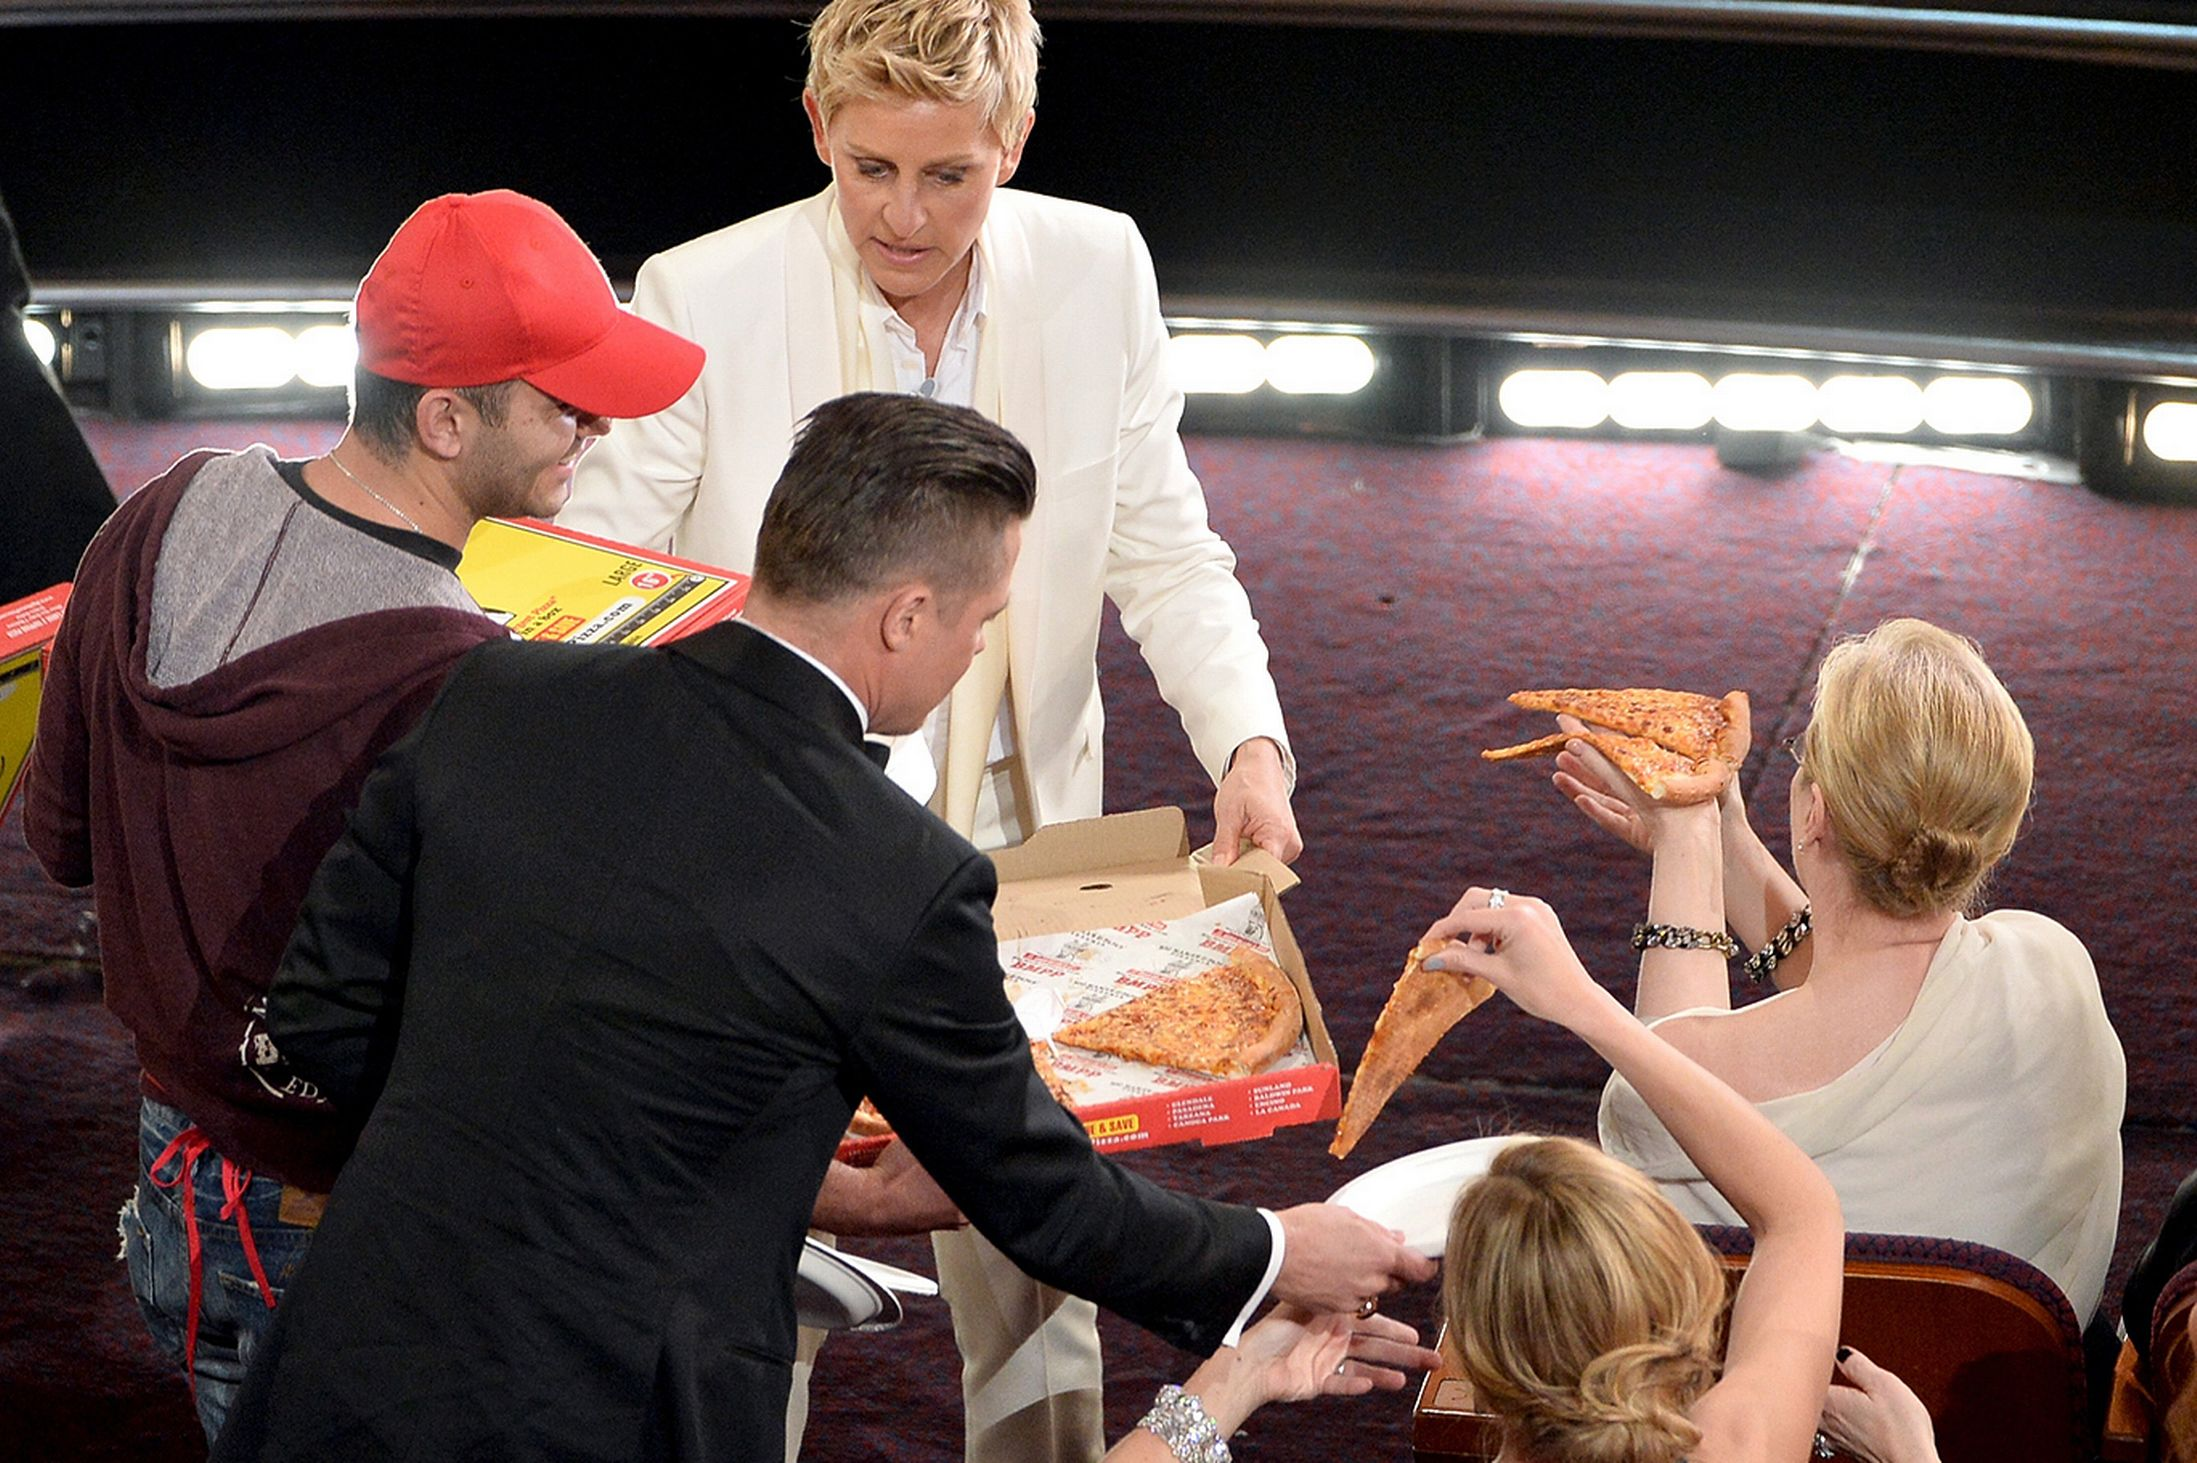 Ellen-DeGeneres-with-pizza-delivery-man_Getty